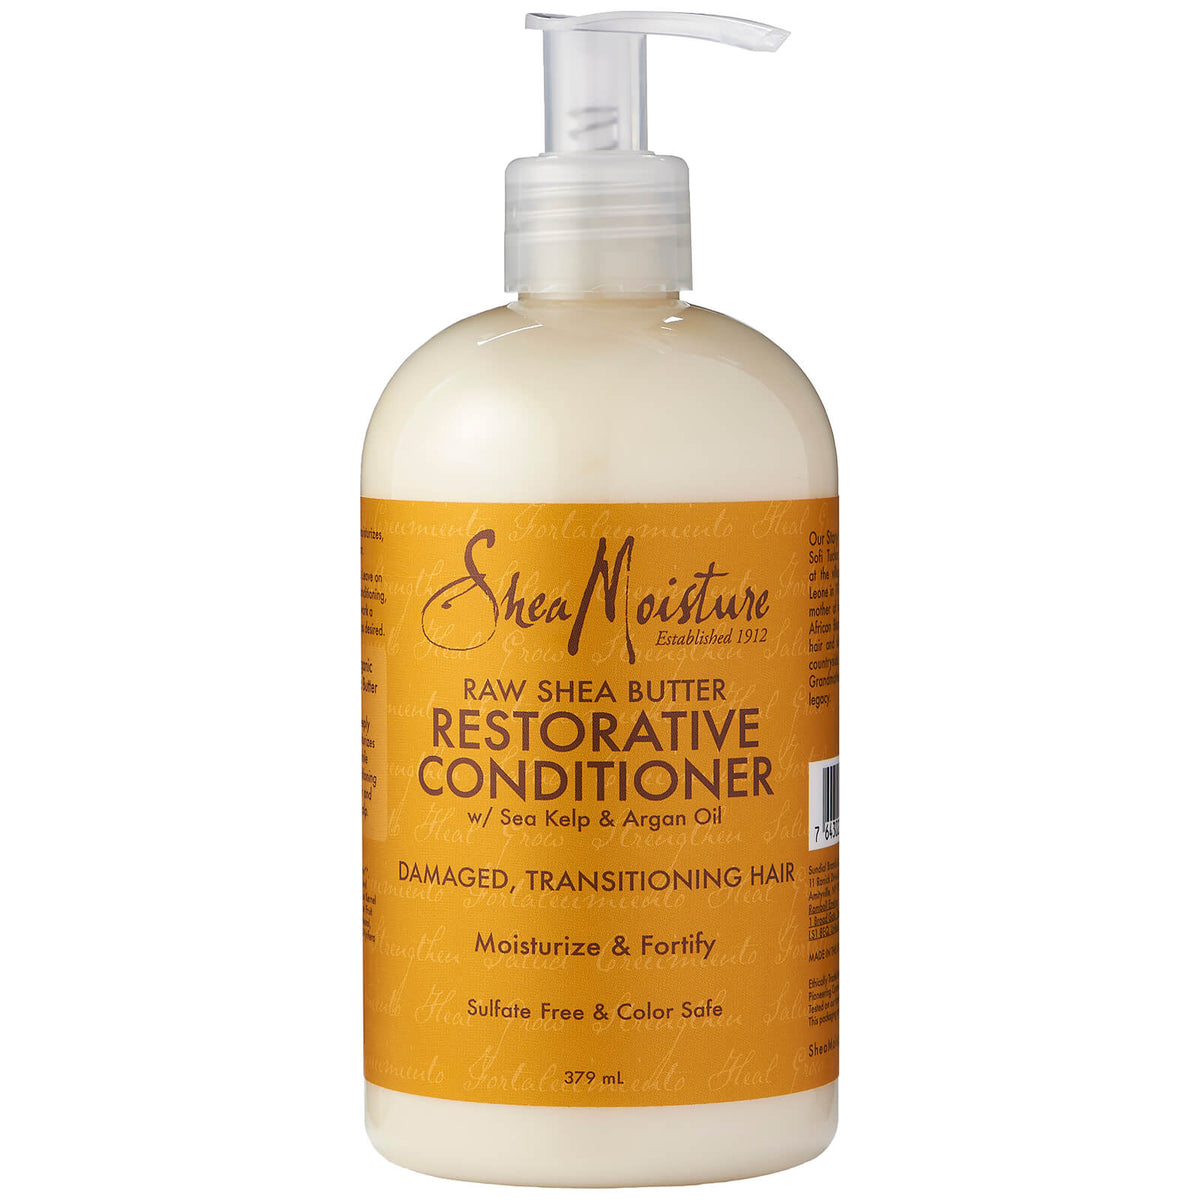 Balsam fortifiant SheaMoisture Raw Shea Butter Restorative Conditioner 384 ml